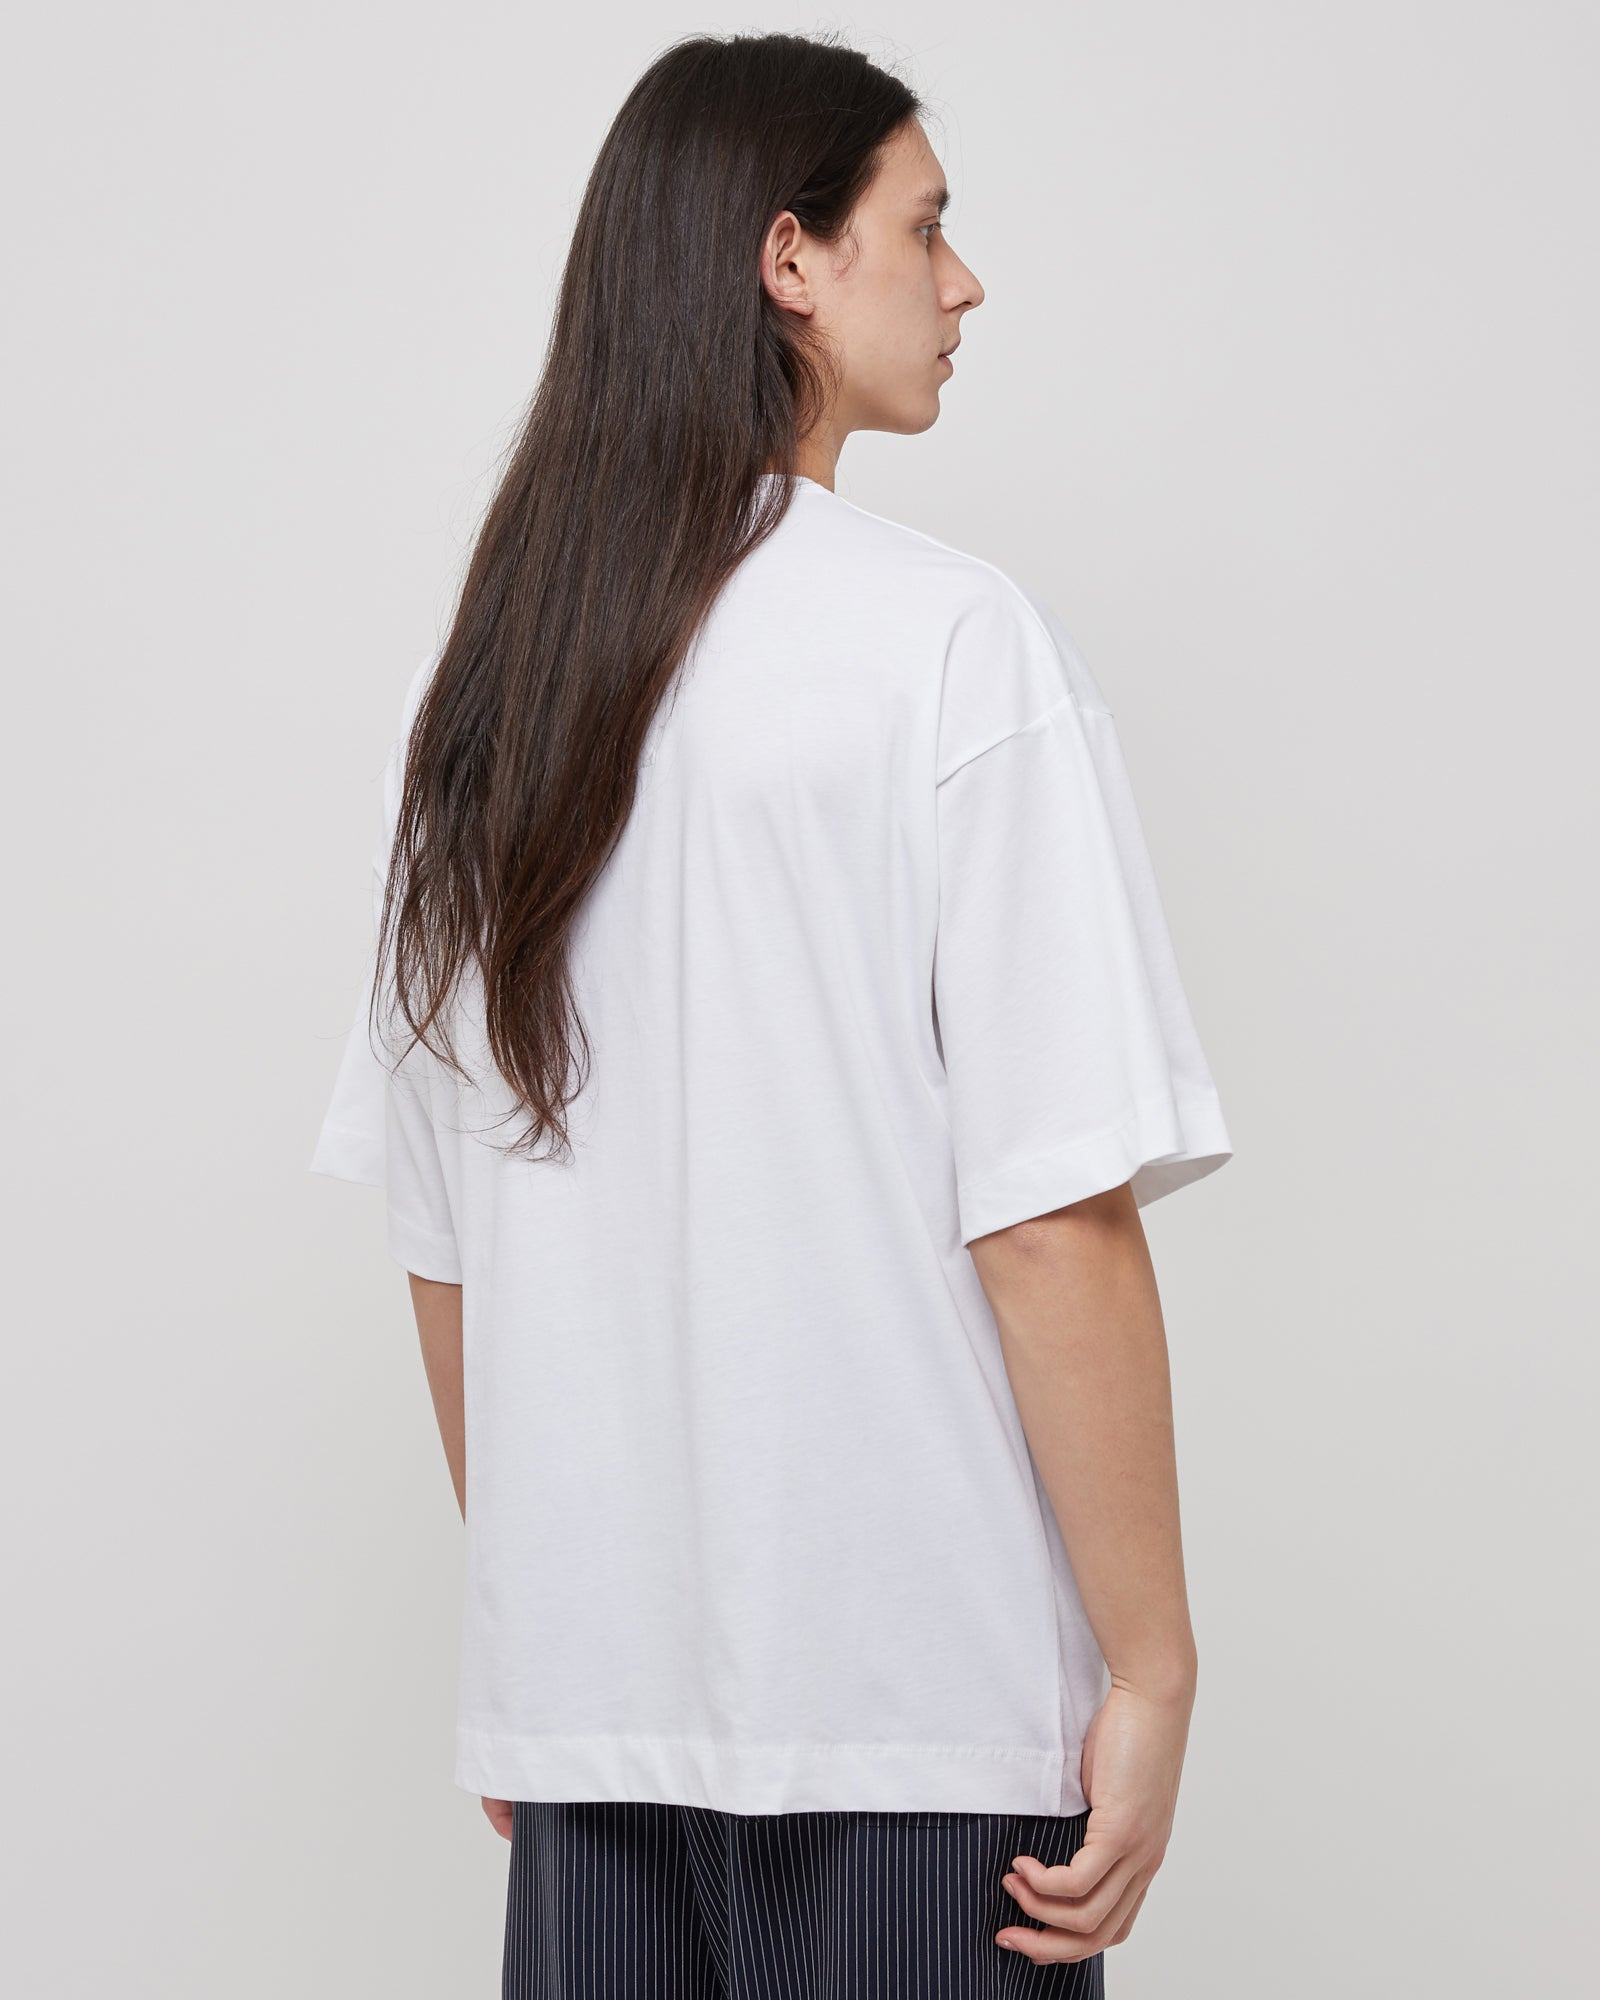 Haky Prmika Shirt in White